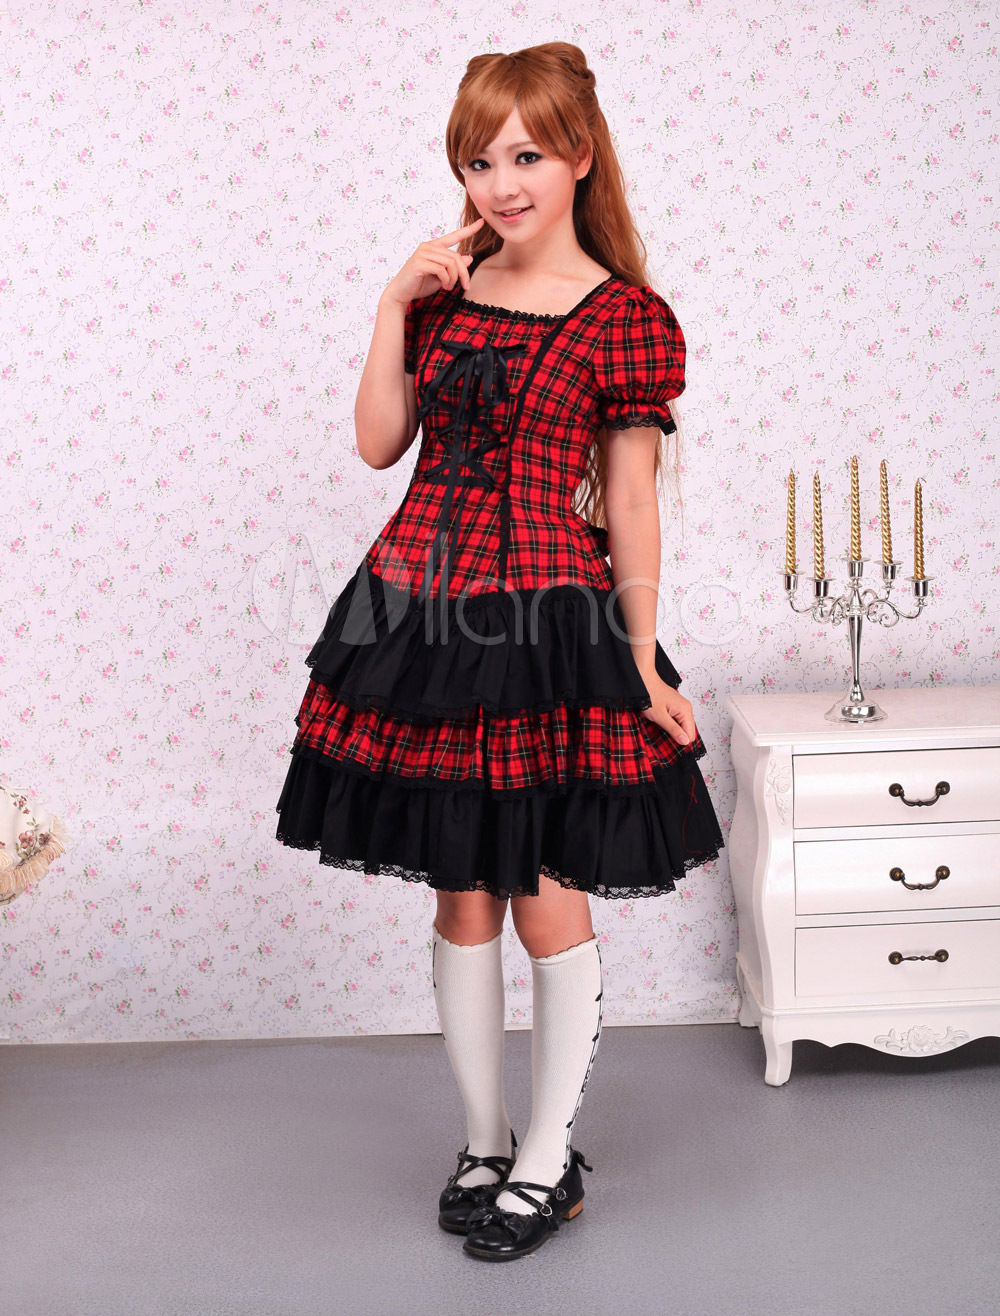 Supercos Store Free shipping! New Arrivals! High quality! Cotton Short Sleeves Black And Red Shepherd Check School Lolita Dress